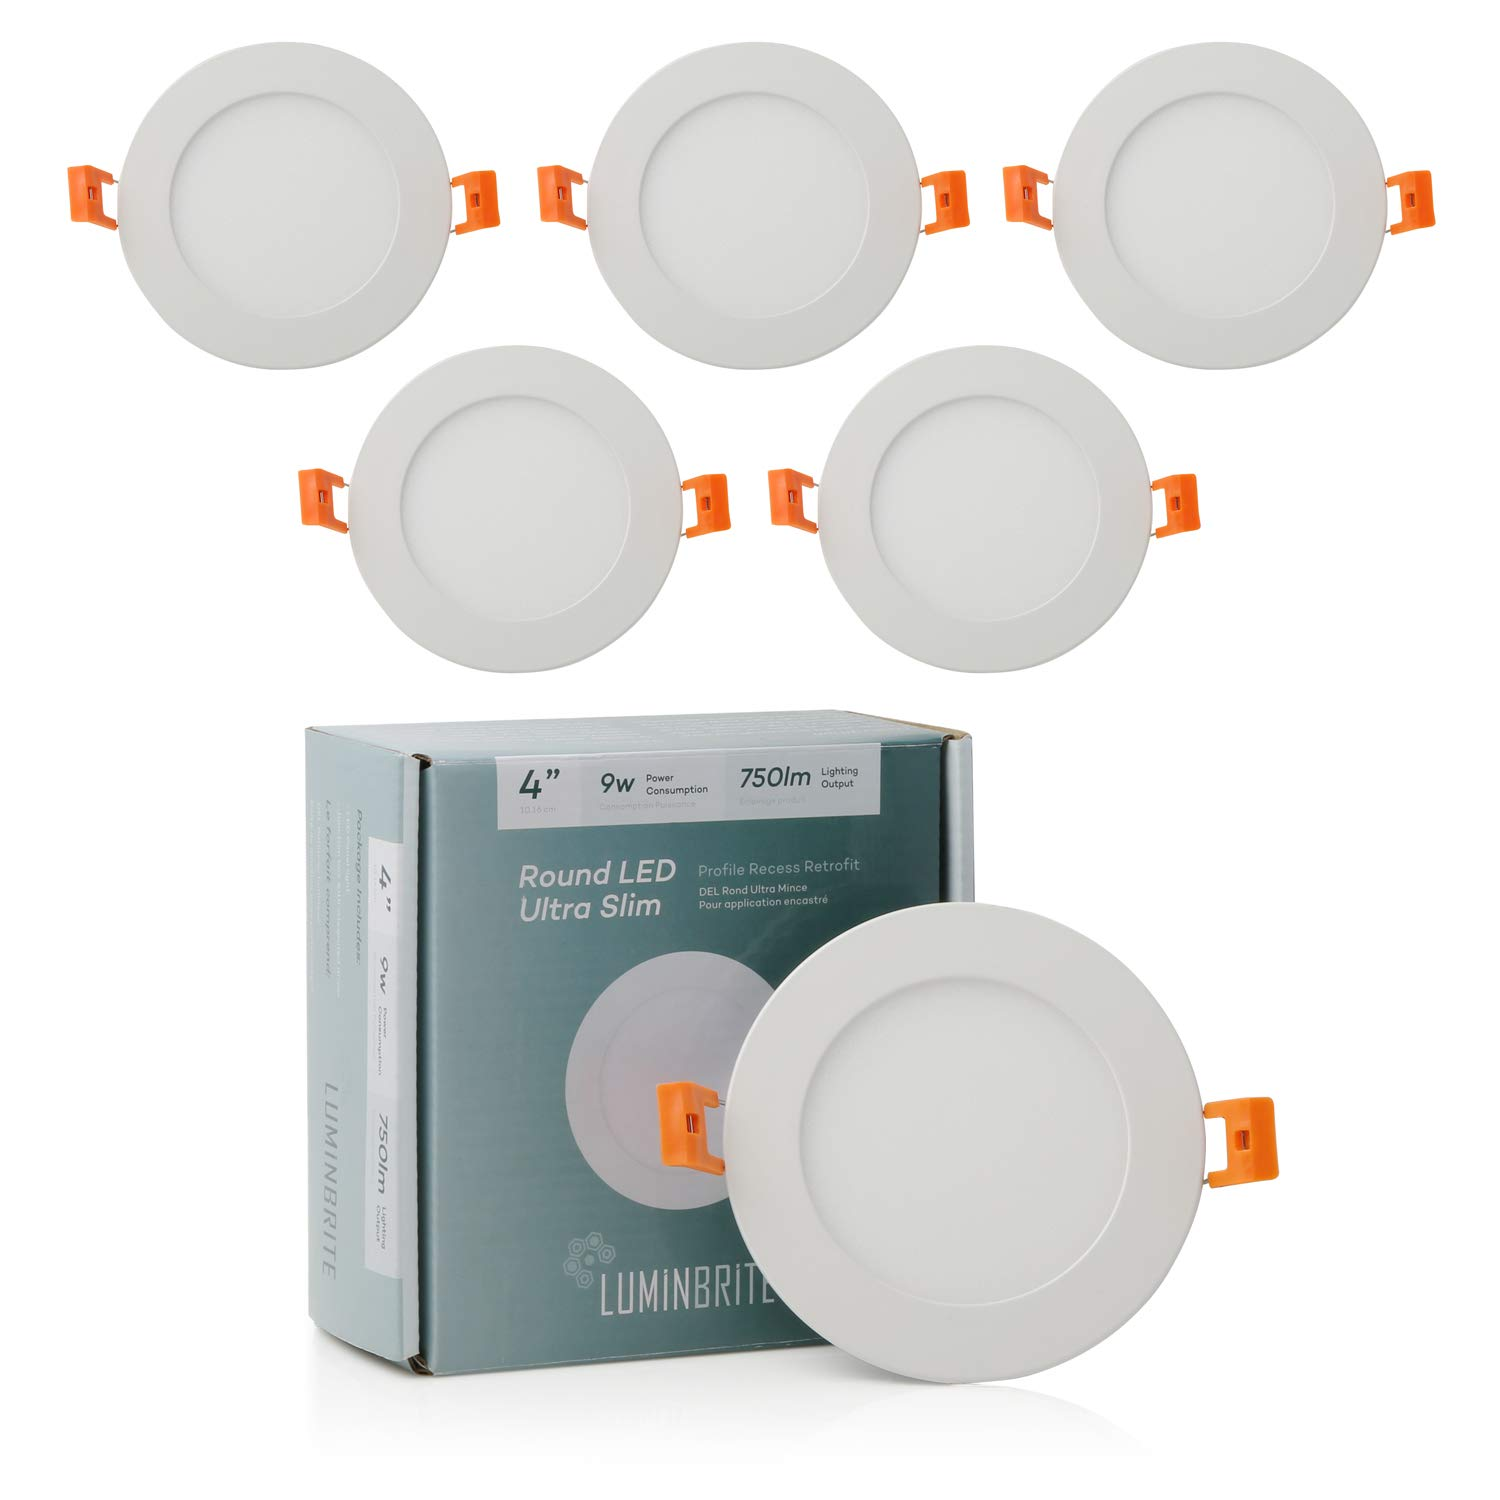 Lumin Brite Round Dimmable LED Recessed Ceiling Light Panel (4-Inch)| Residential 9W 750lm High Lumens | Slim Profile 3000K Disk Light for Home | ETL Listed/Energy Star Certification | Soft 6 Pack